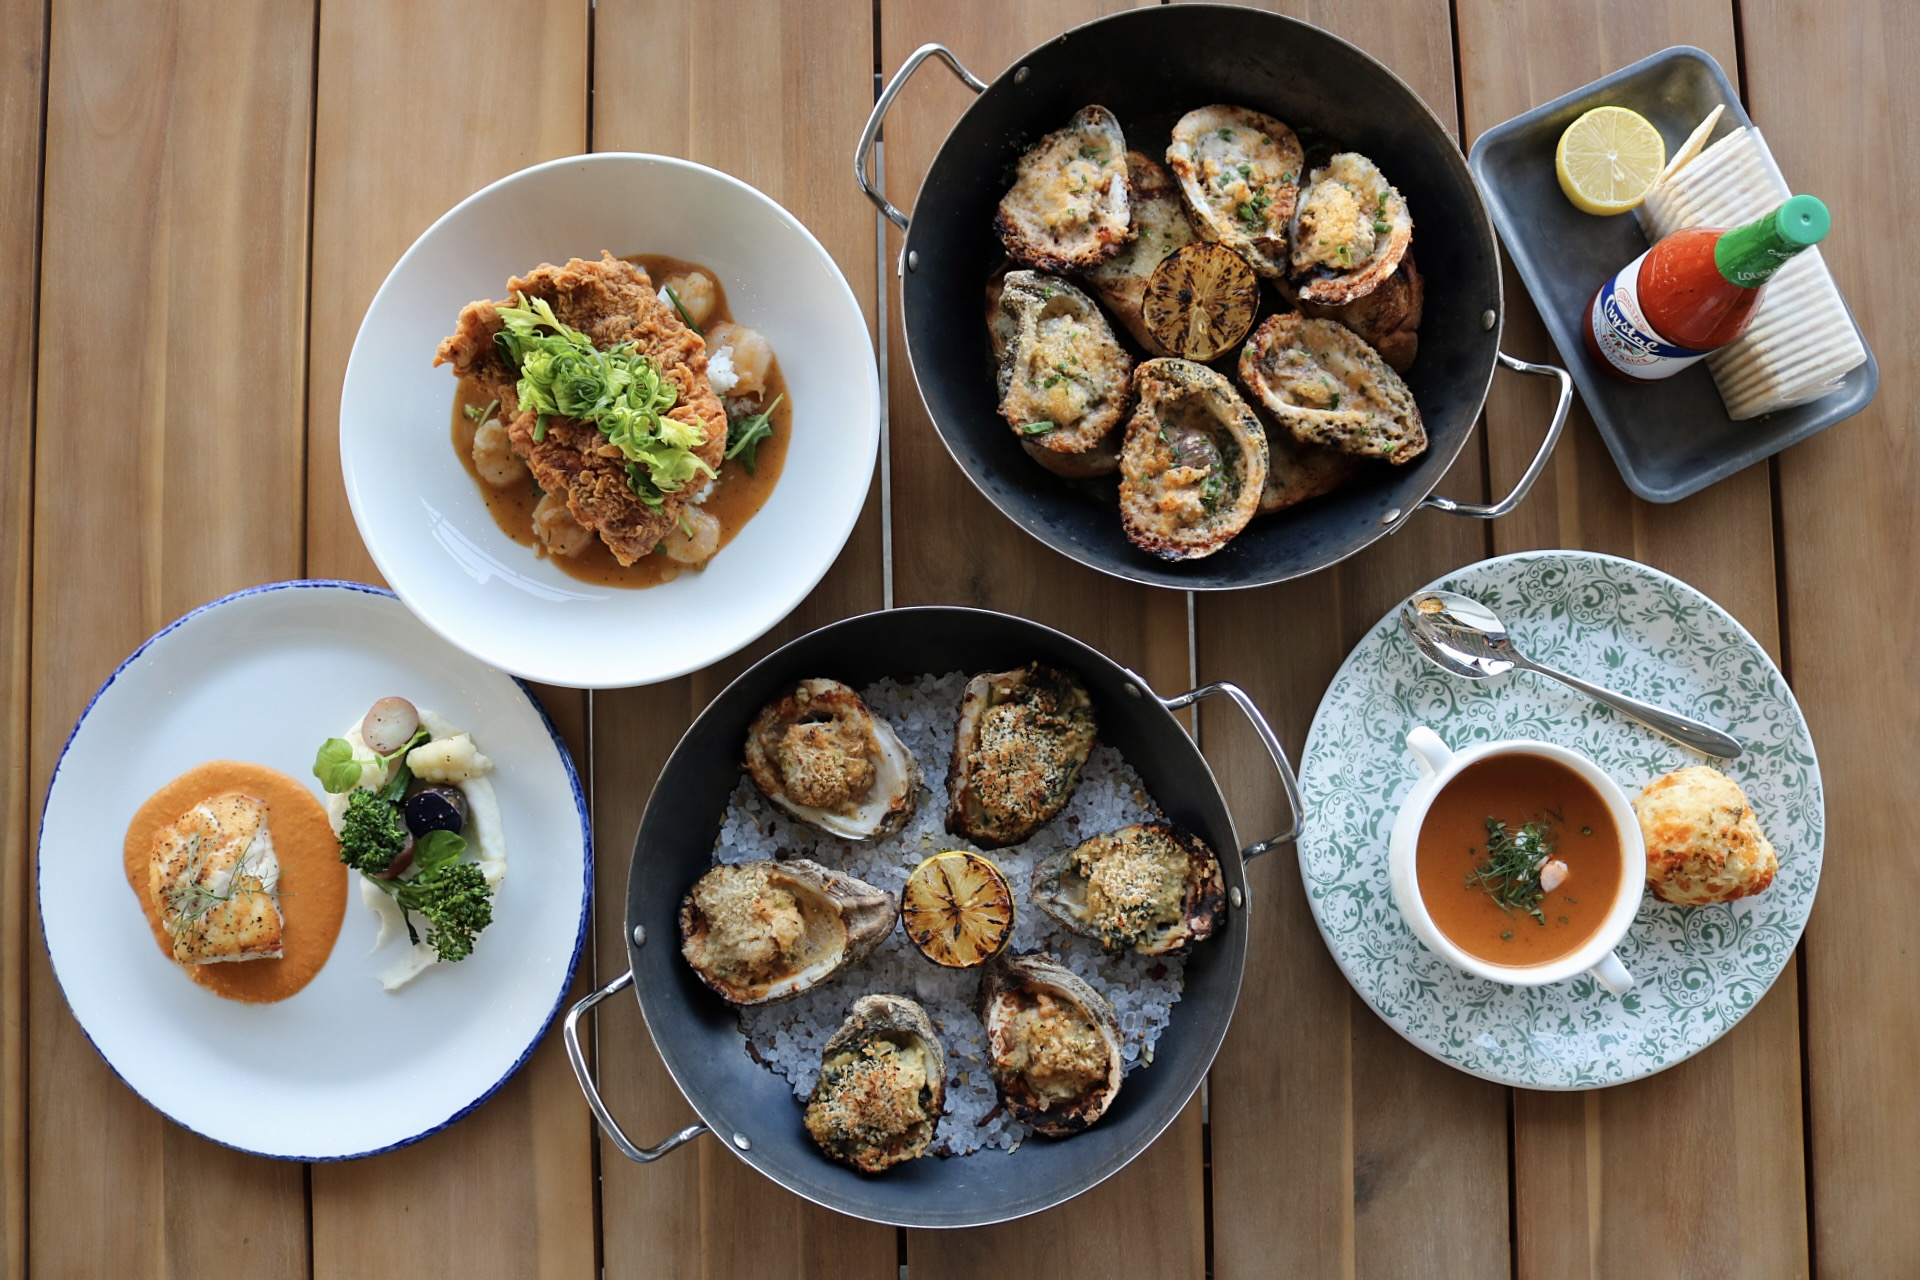 Oysters, seafood bisque, and other seafood dishes on a wood table